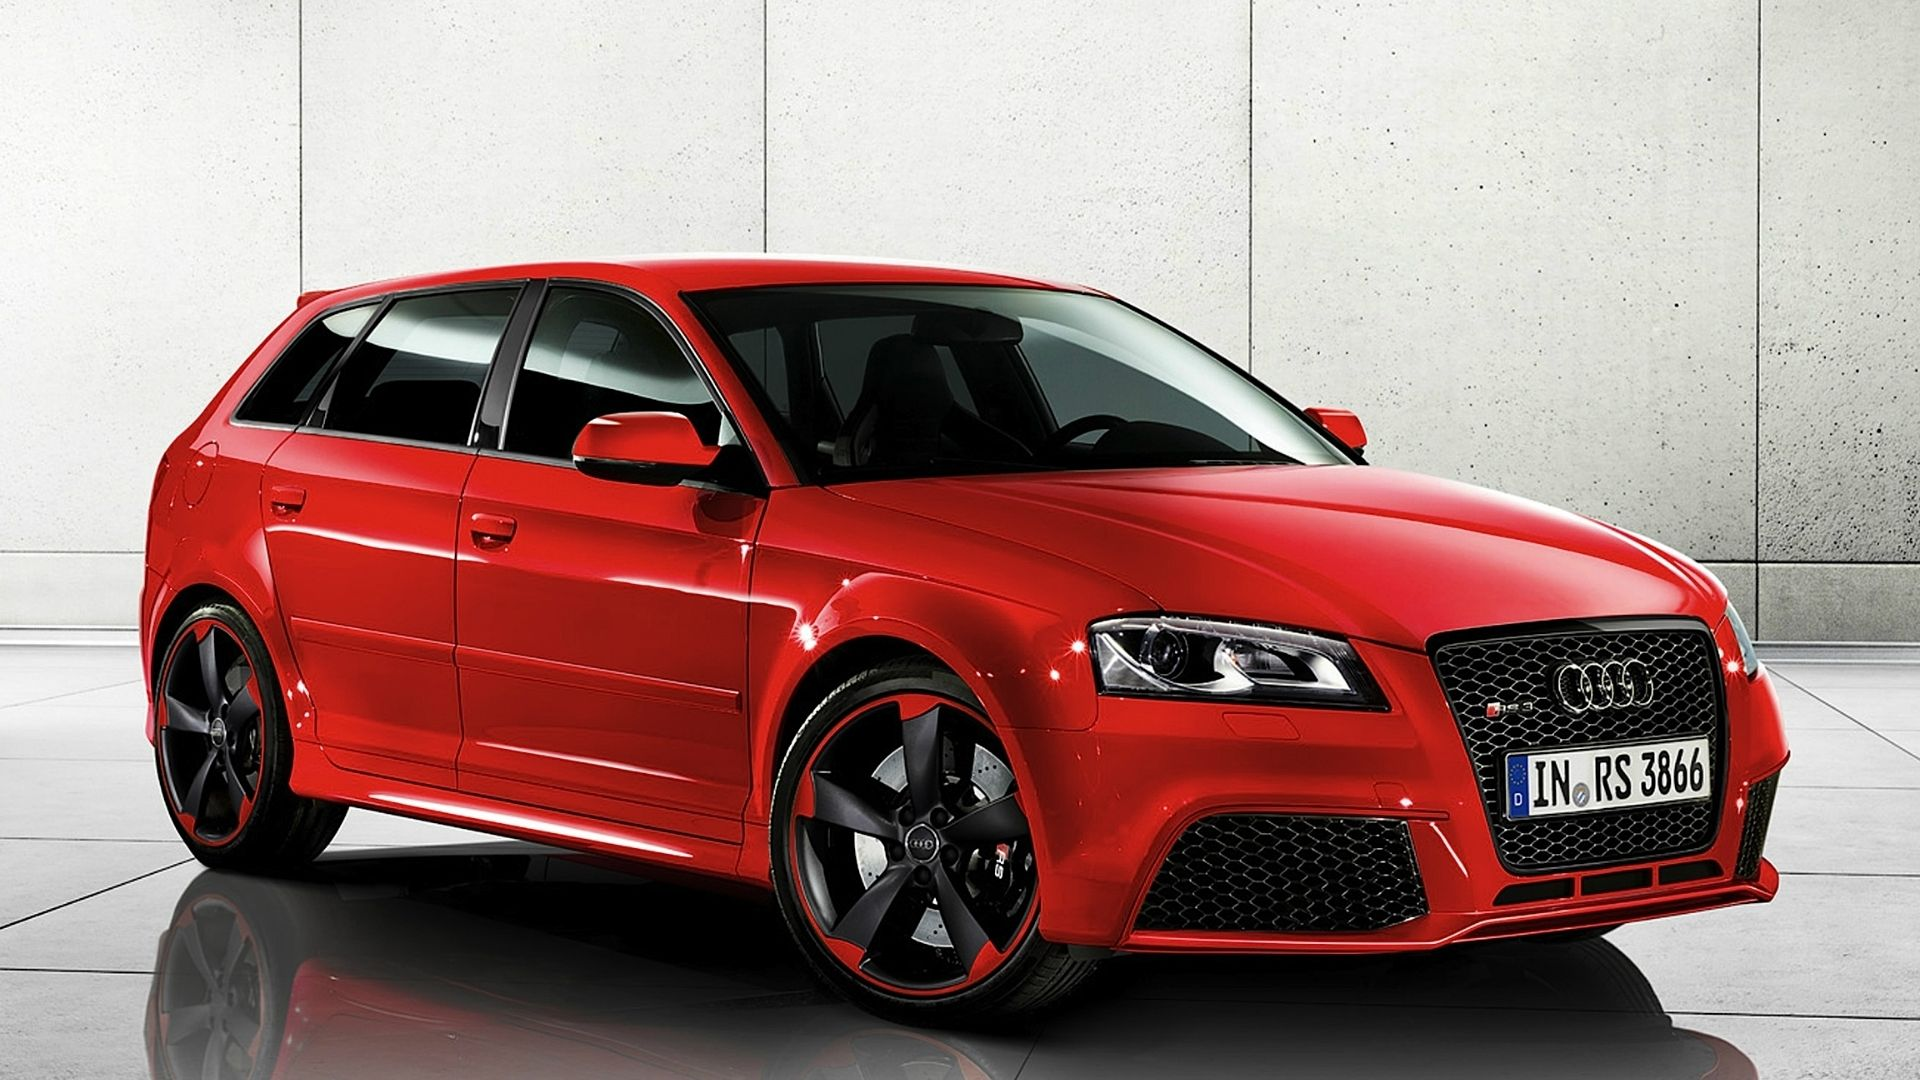 2012 Audi Rs3 Sportback Image collections